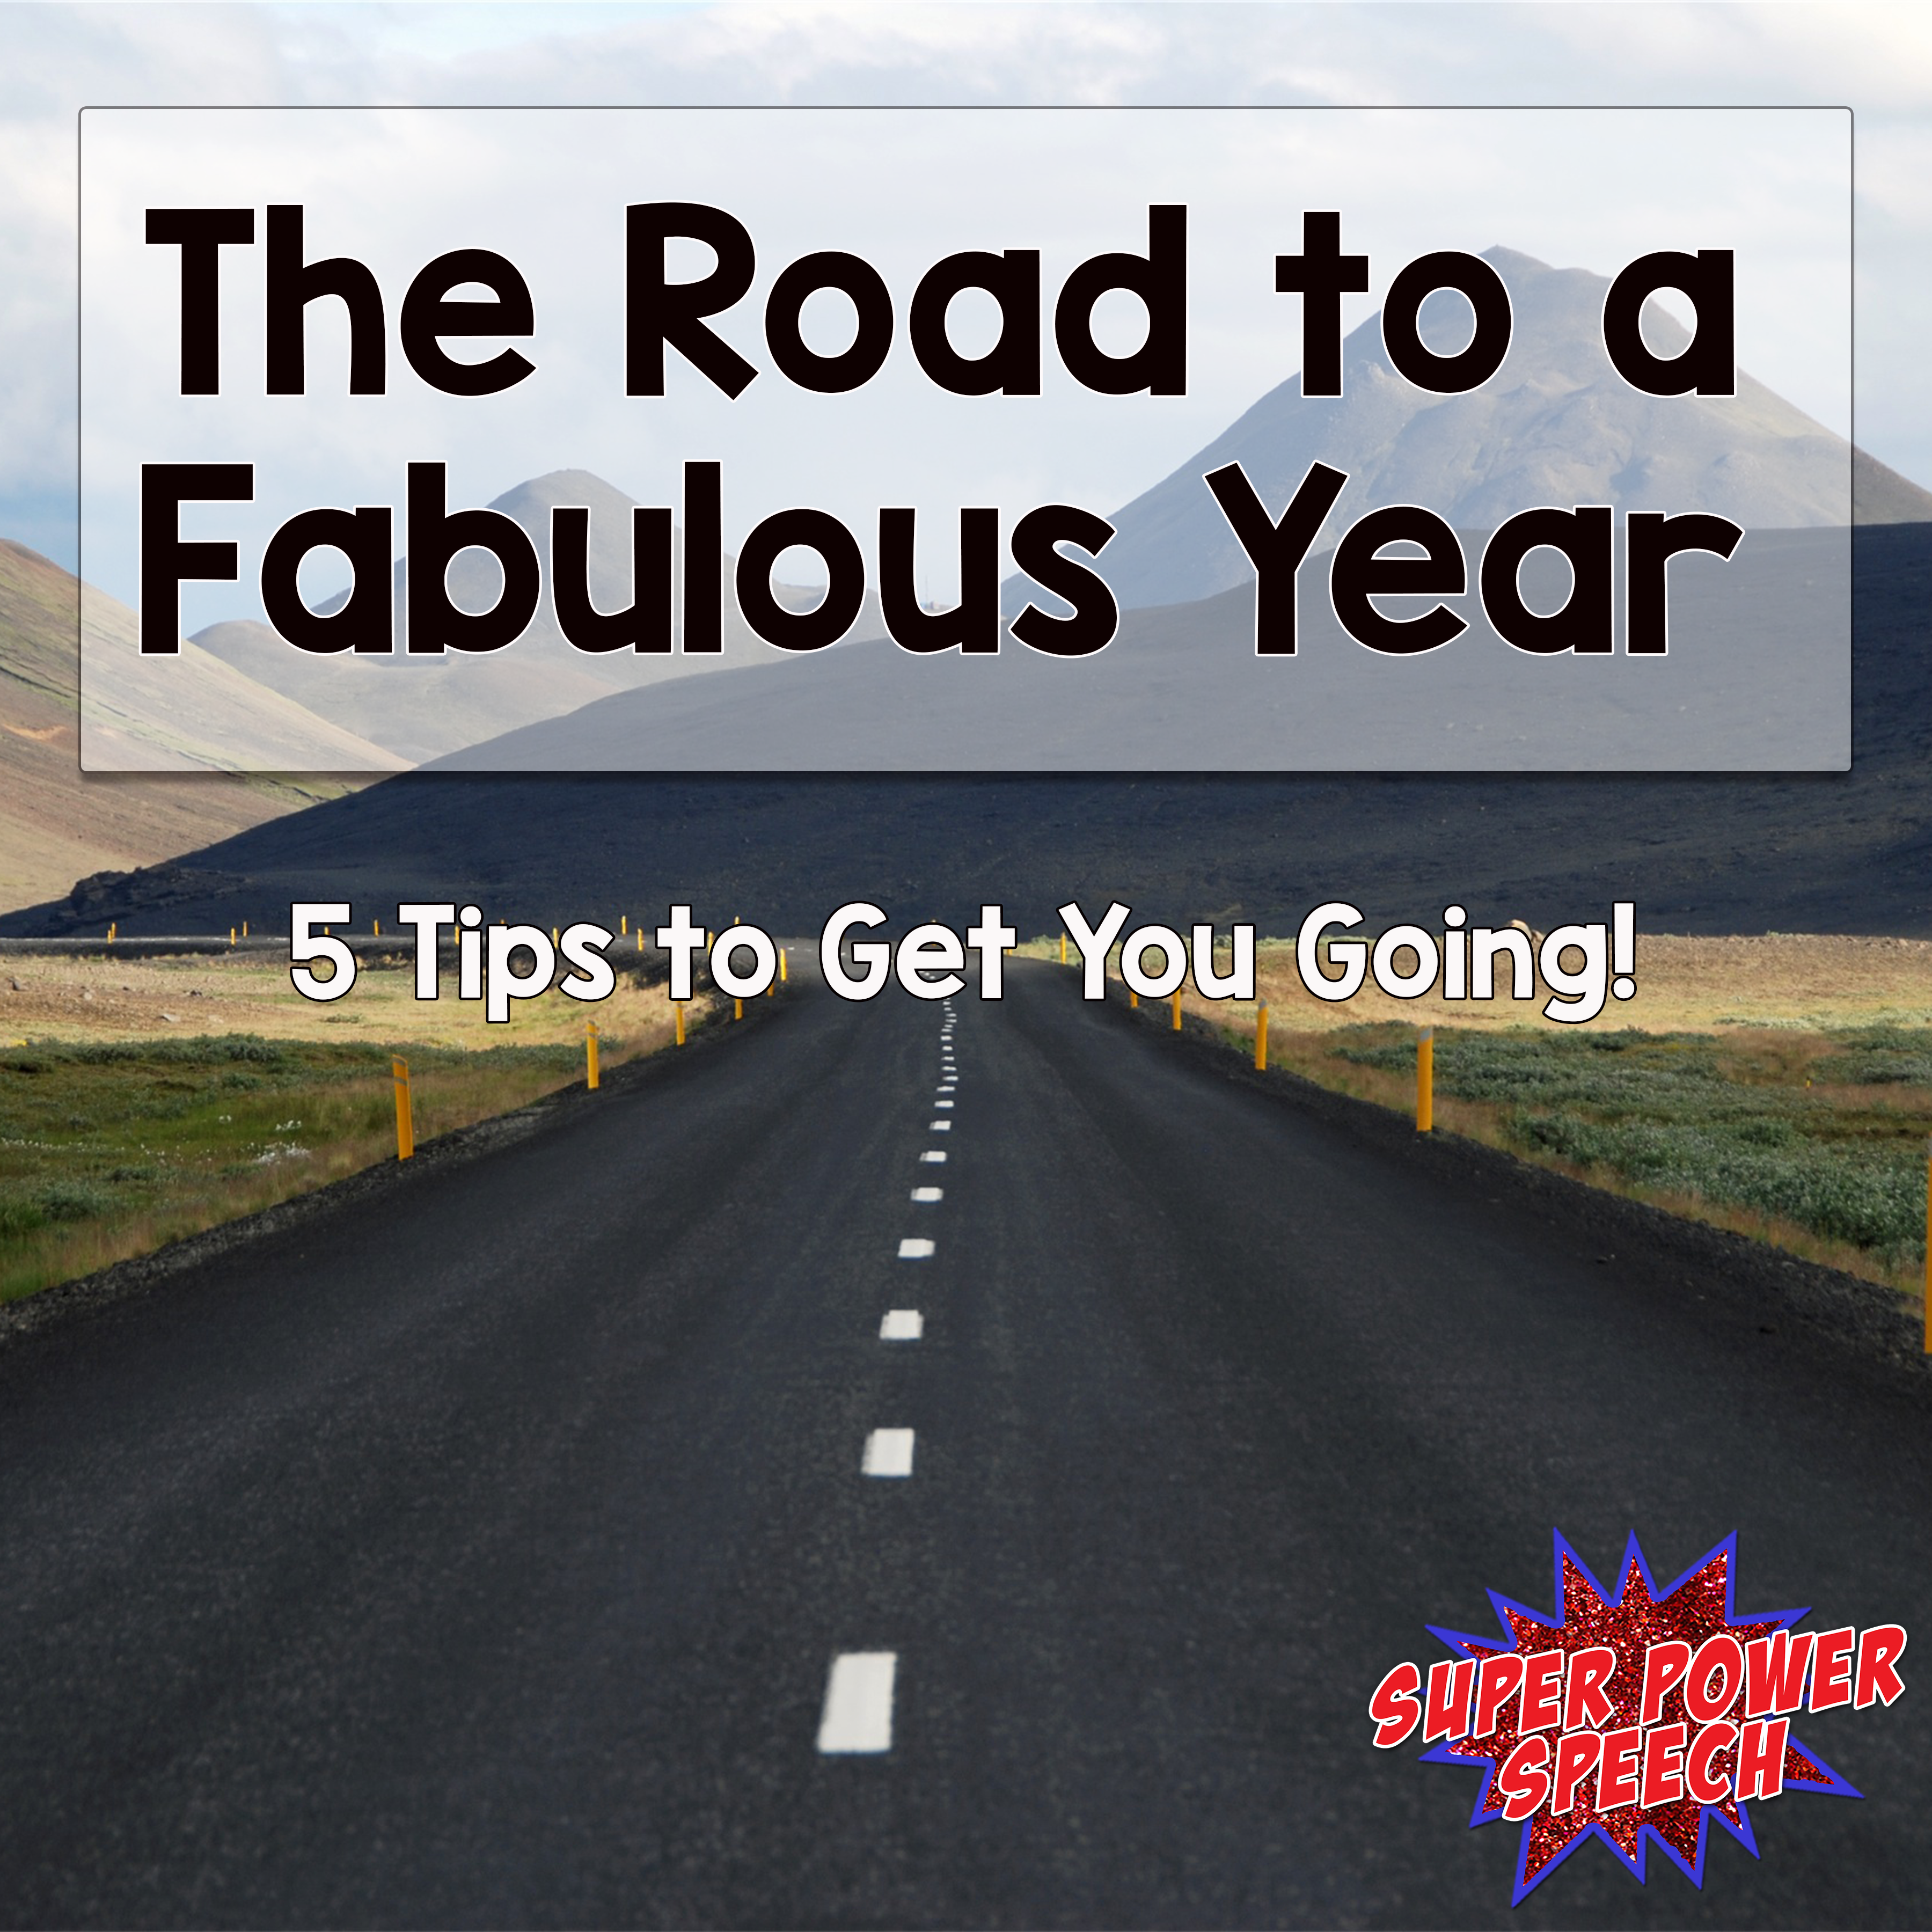 The Road to a Fabulous Year